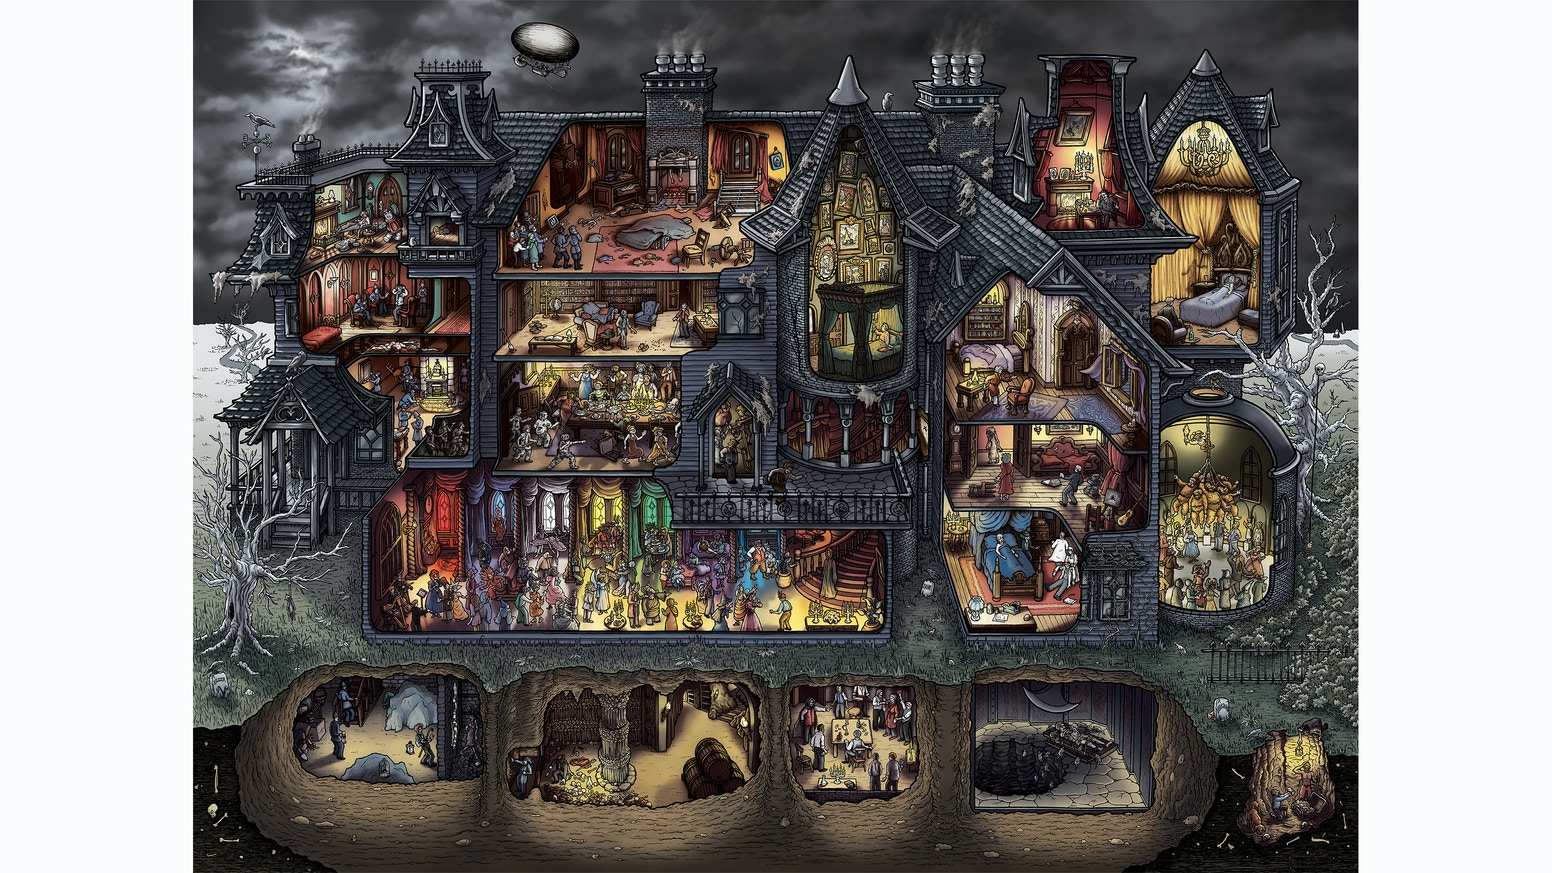 Edgar Allan Poe's Macabre Mansion: Jigsaw Puzzle & Prints by Holly